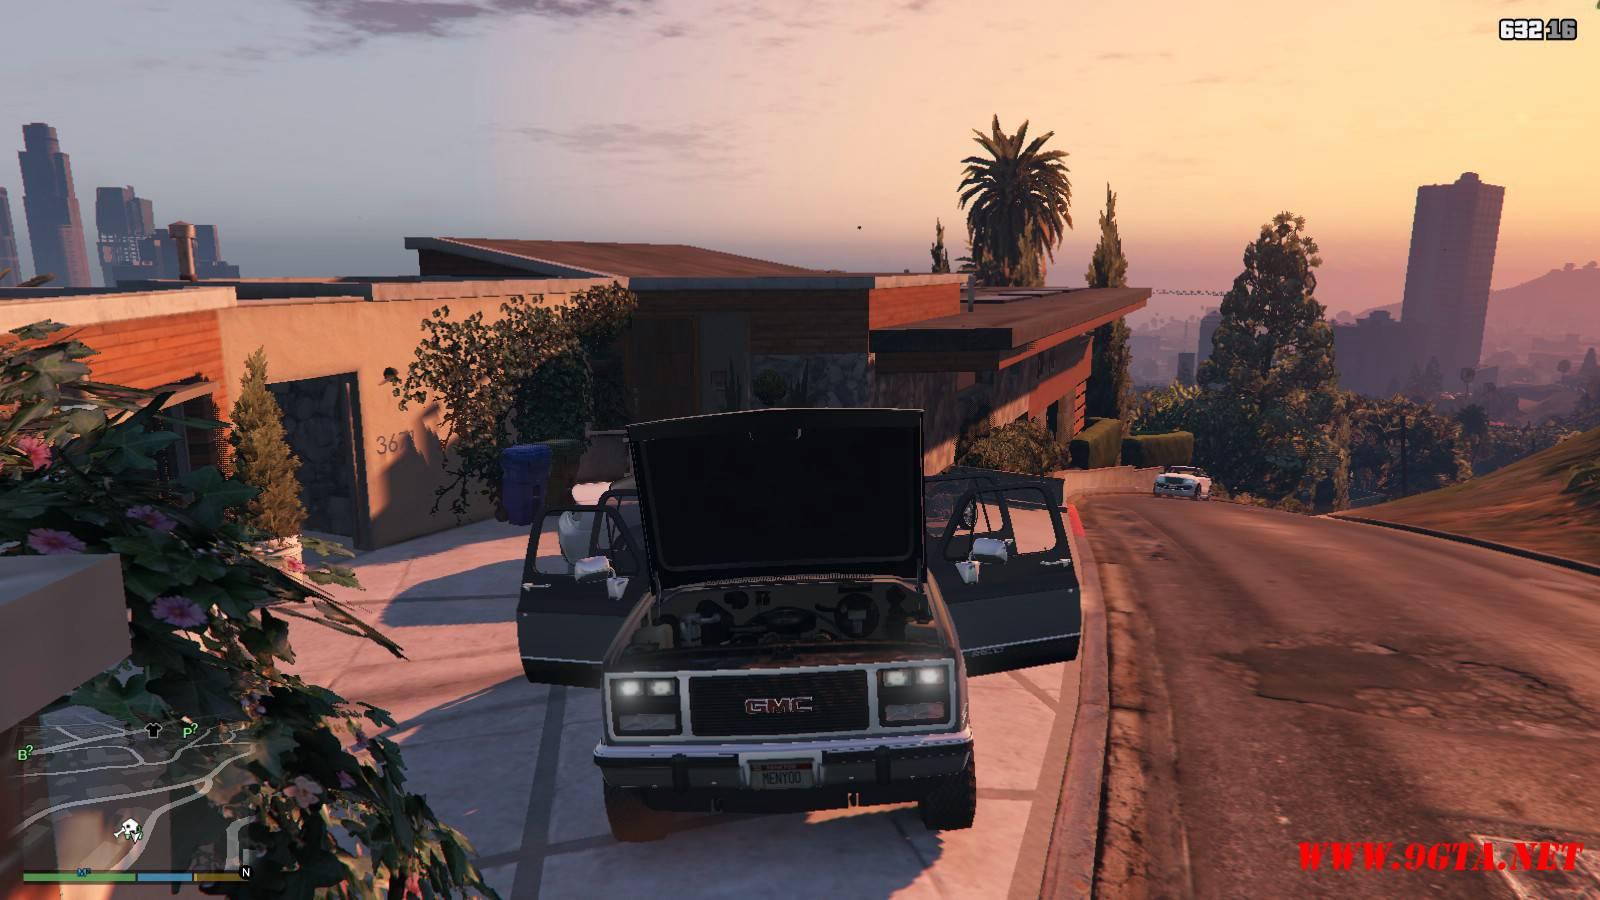 1989 GMC Suburban Mod For GTA 5 (14)